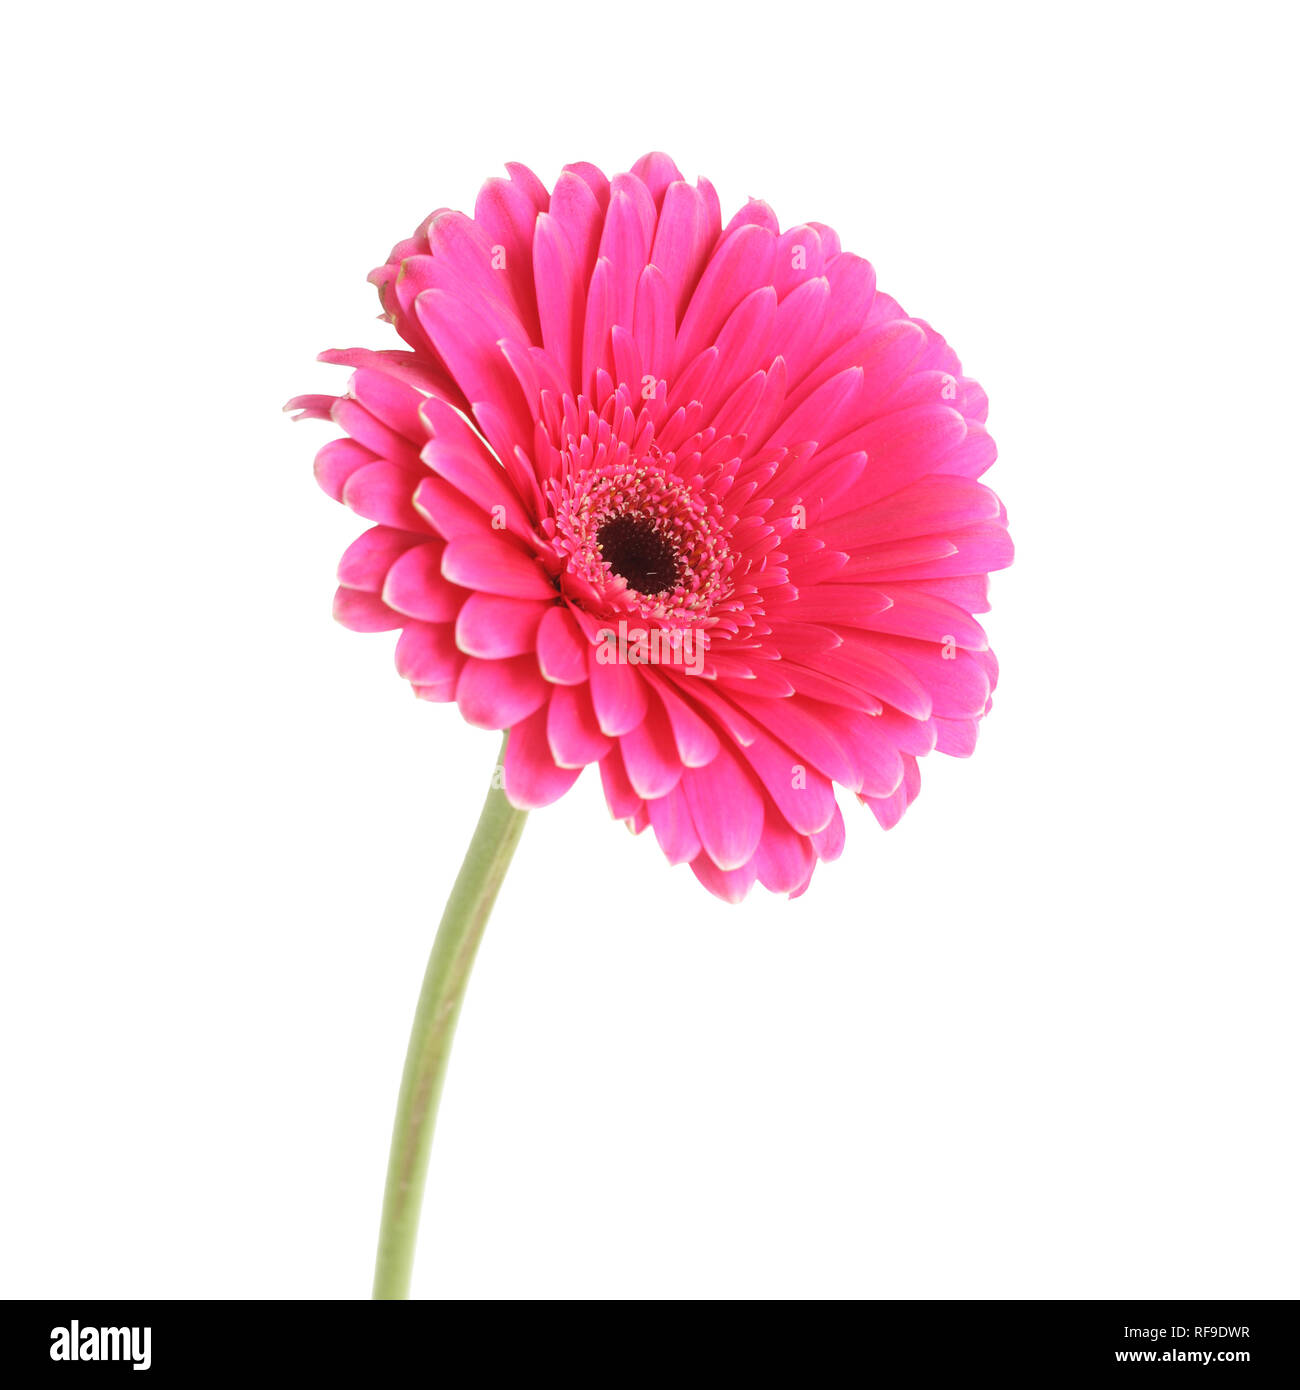 Pink gerbera flower, isolated on white - Stock Image